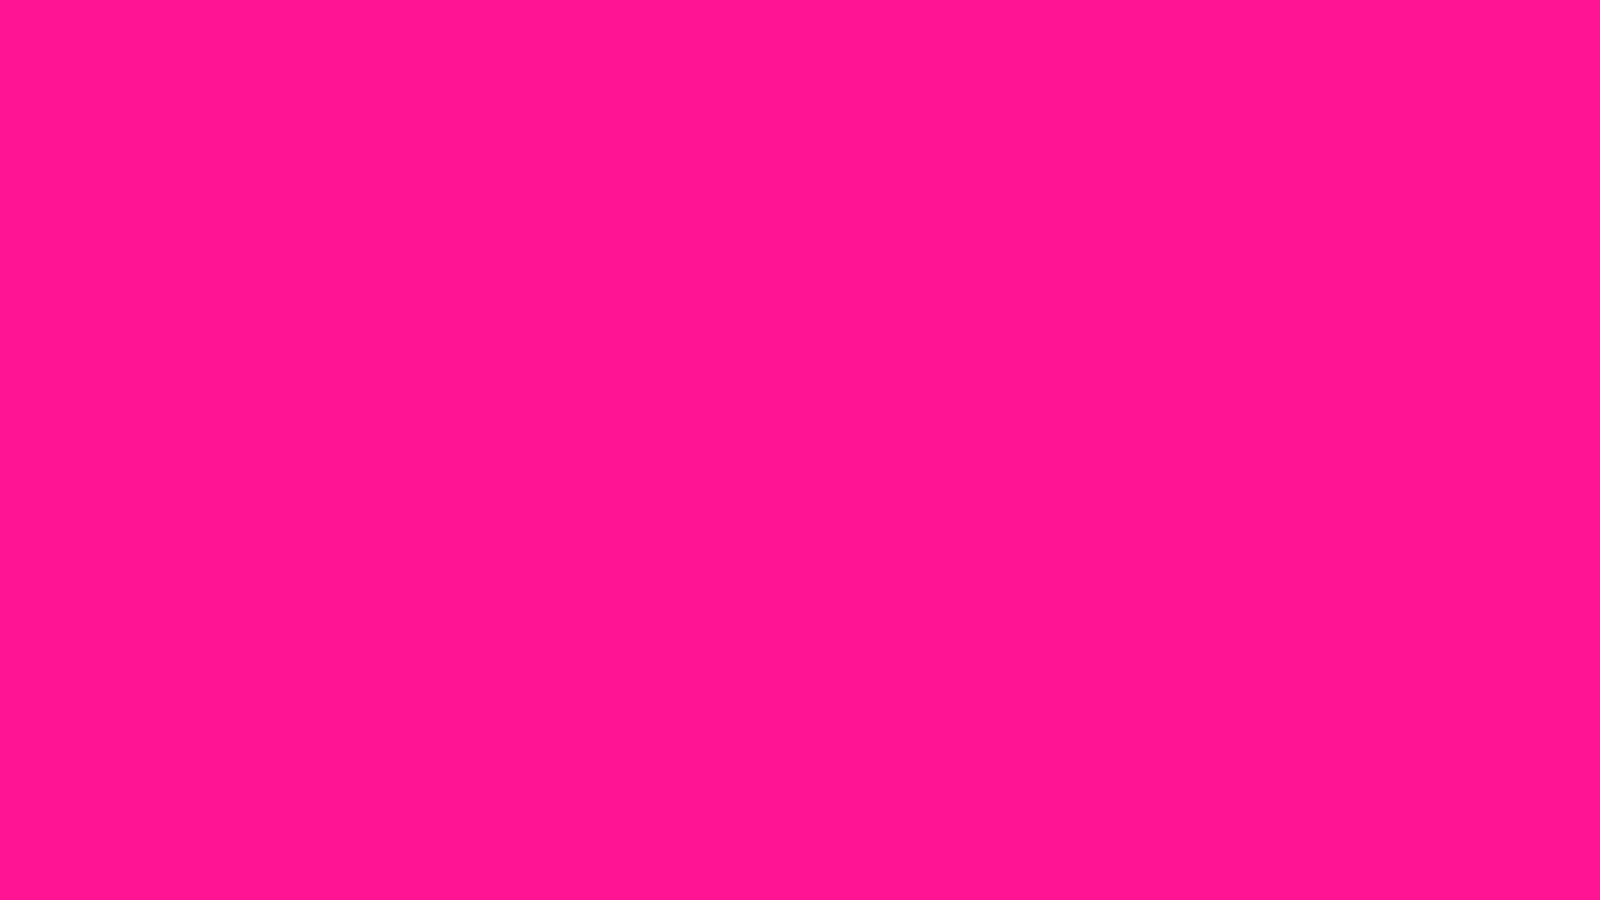 1600x900 Fluorescent Pink Solid Color Background